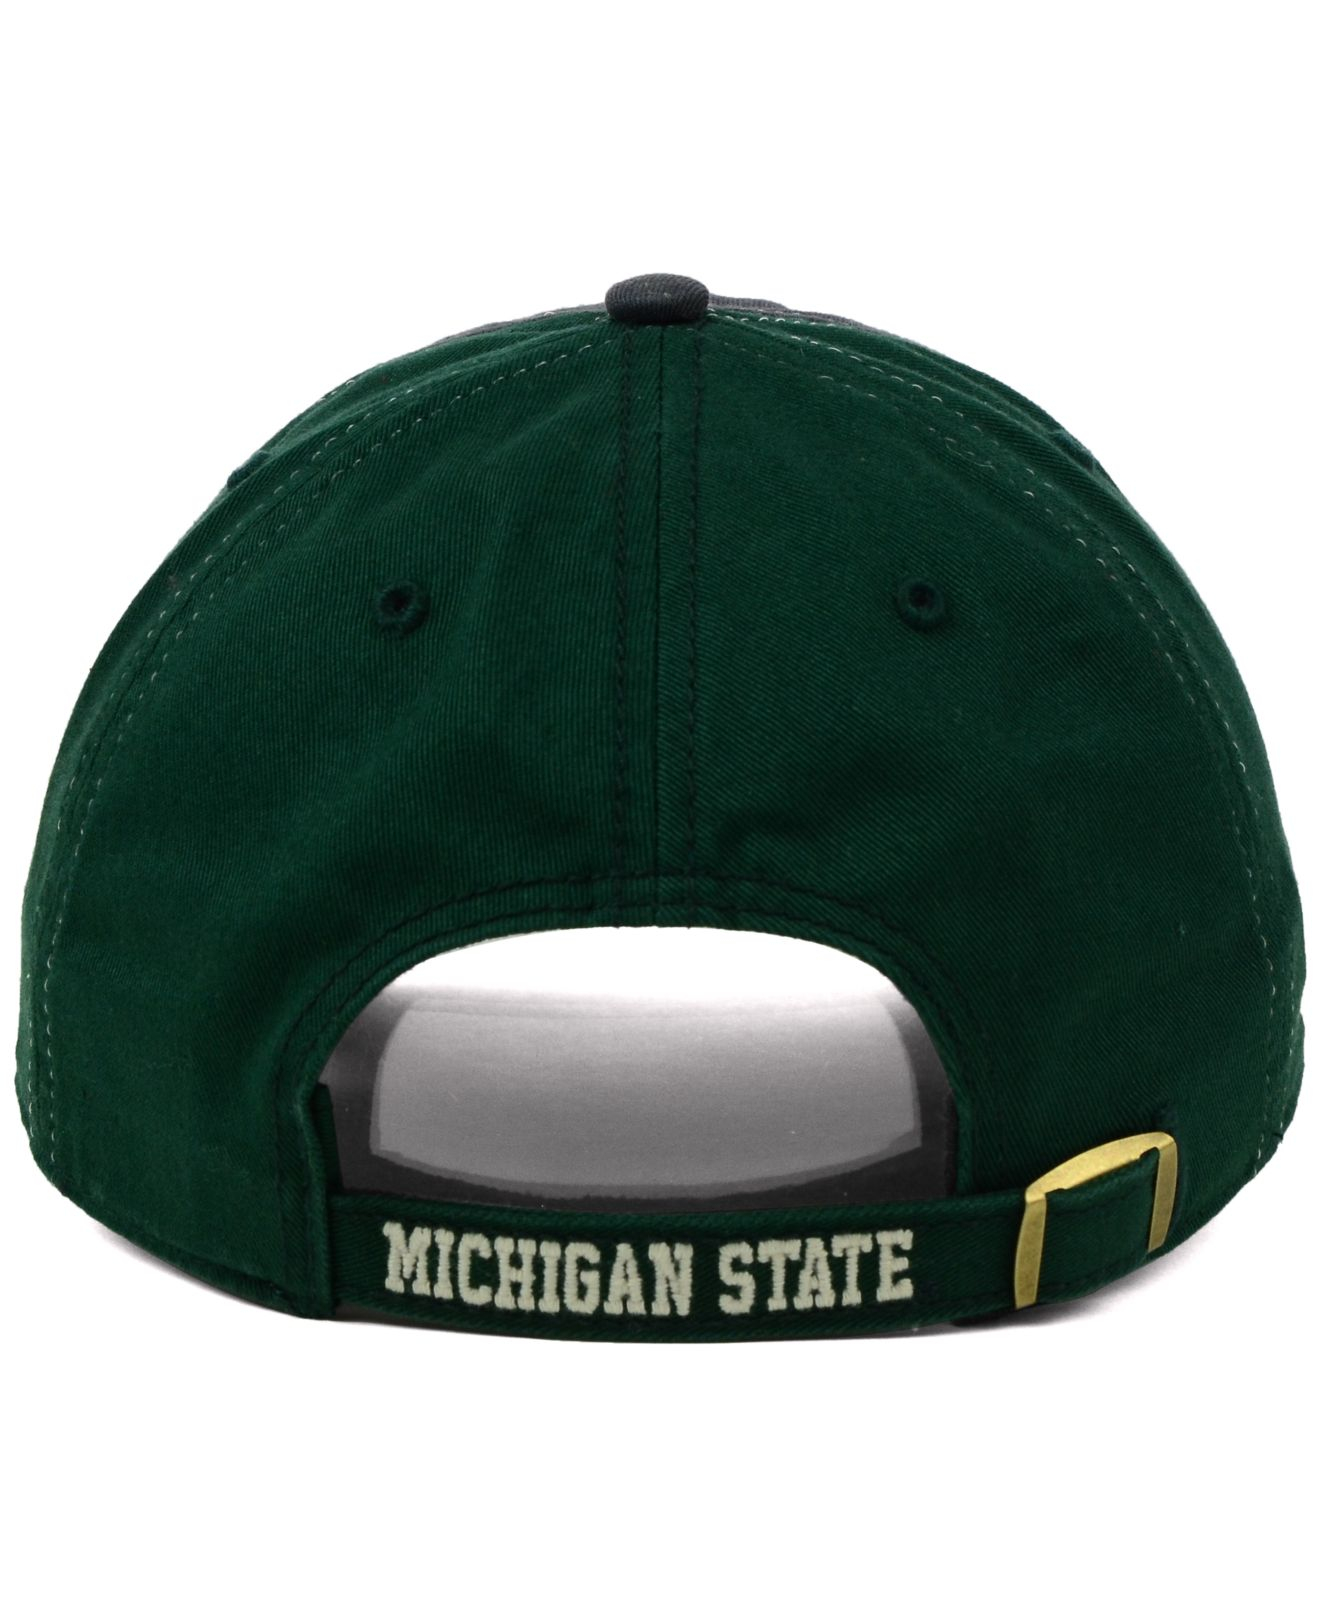 sports shoes 3969f c8404 closeout lyst 47 brand michigan state spartans clean up cap in green for  men 0fe6d ce216